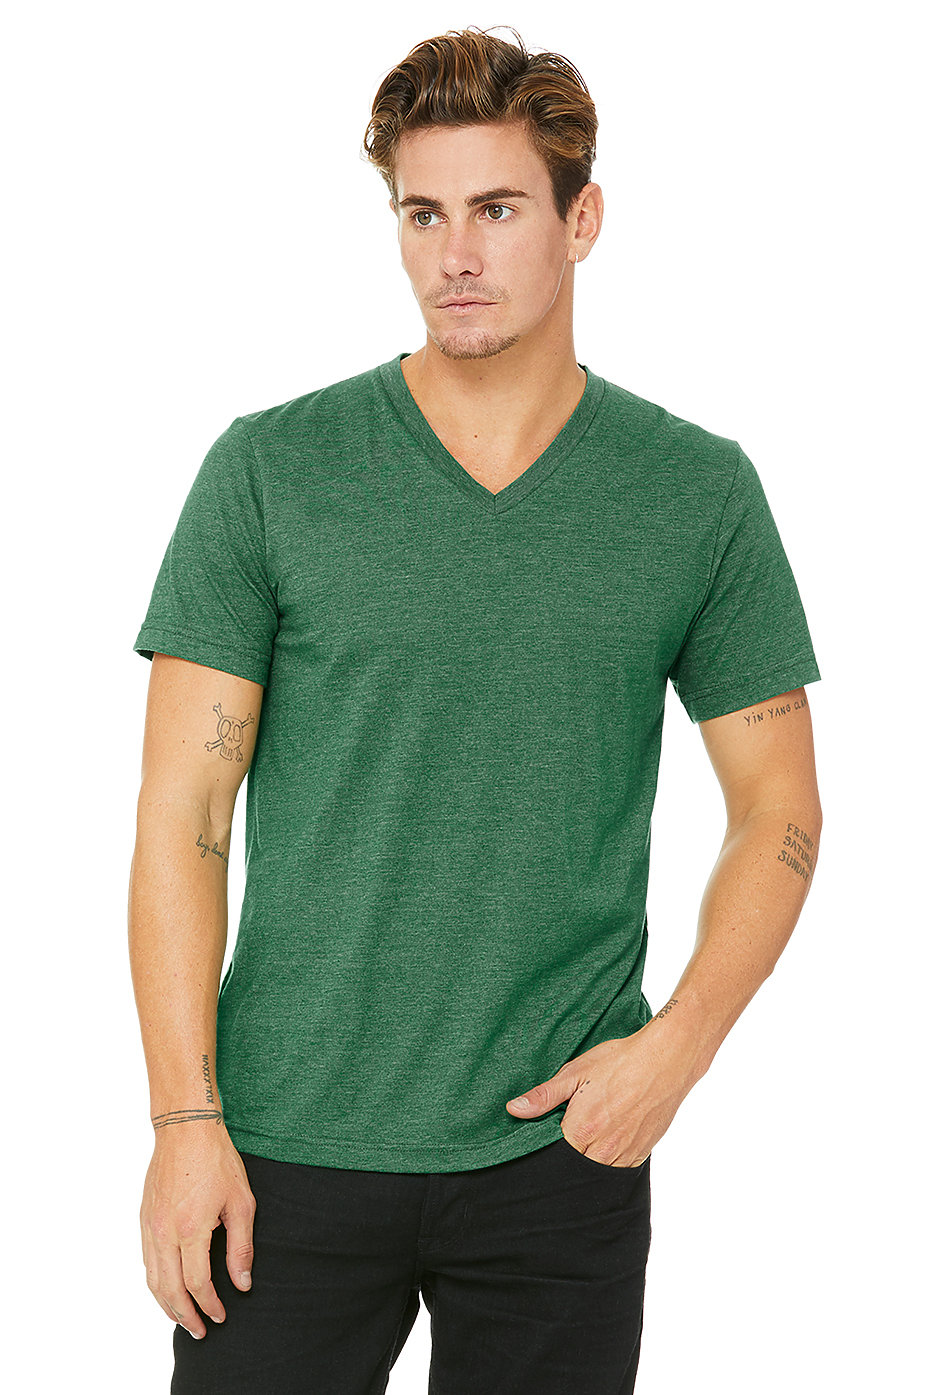 Deep V Shirt Men